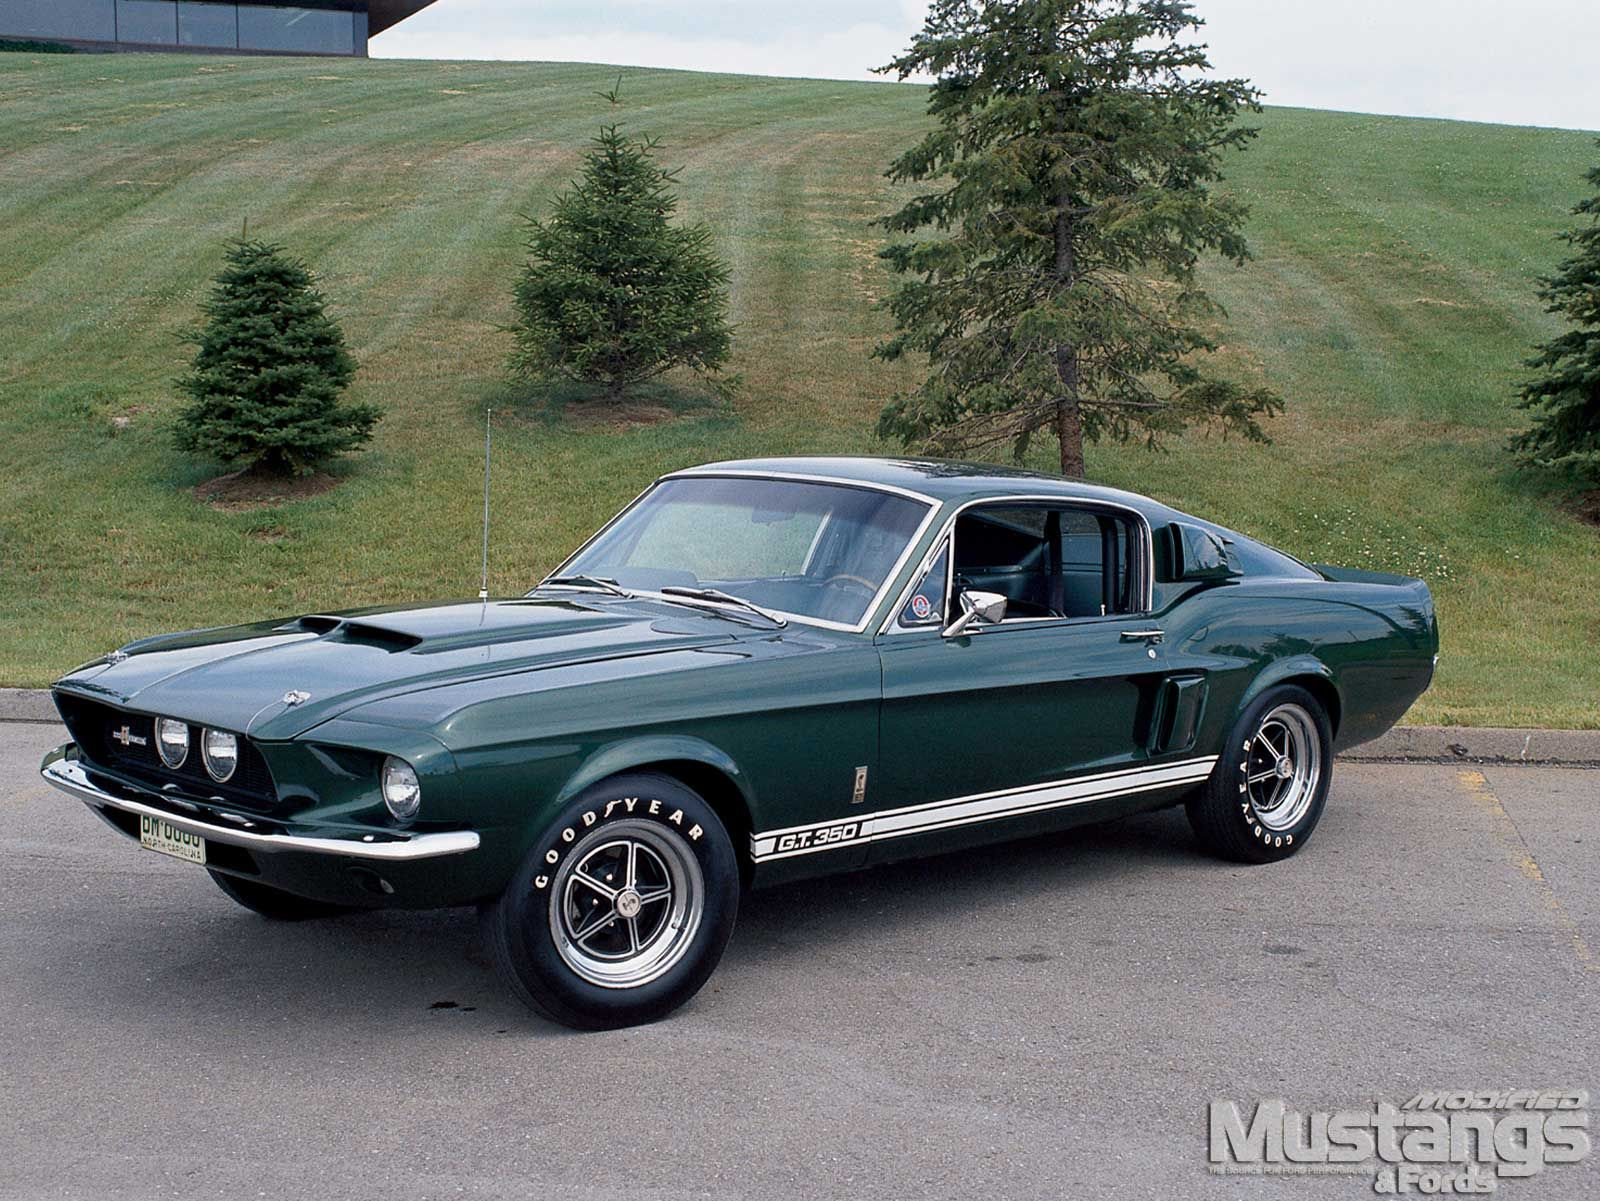 1967 Ford Shelby GT350 Mustang Shelby Power & Image Gallery